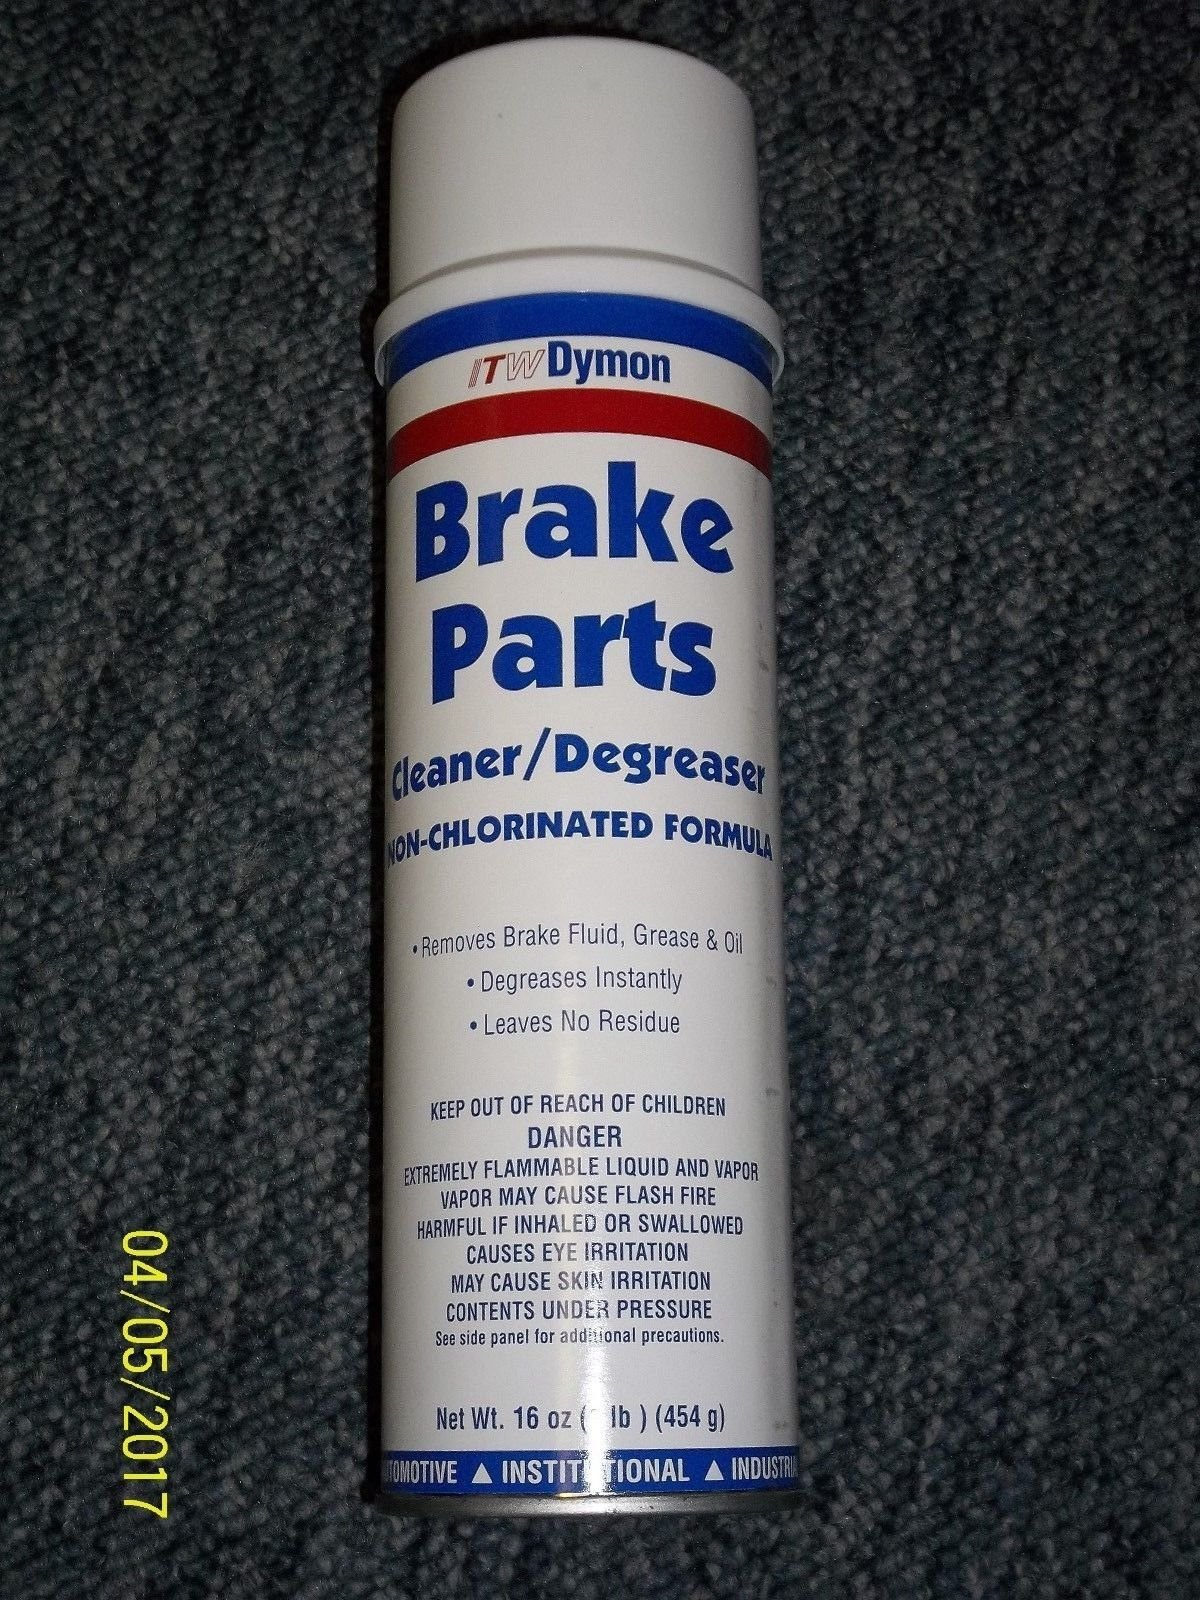 Case of 12 ITW Dymon 50220 Brake Parts Cleaner Degreaser non-chlorinated 16 oz by Brake Parts